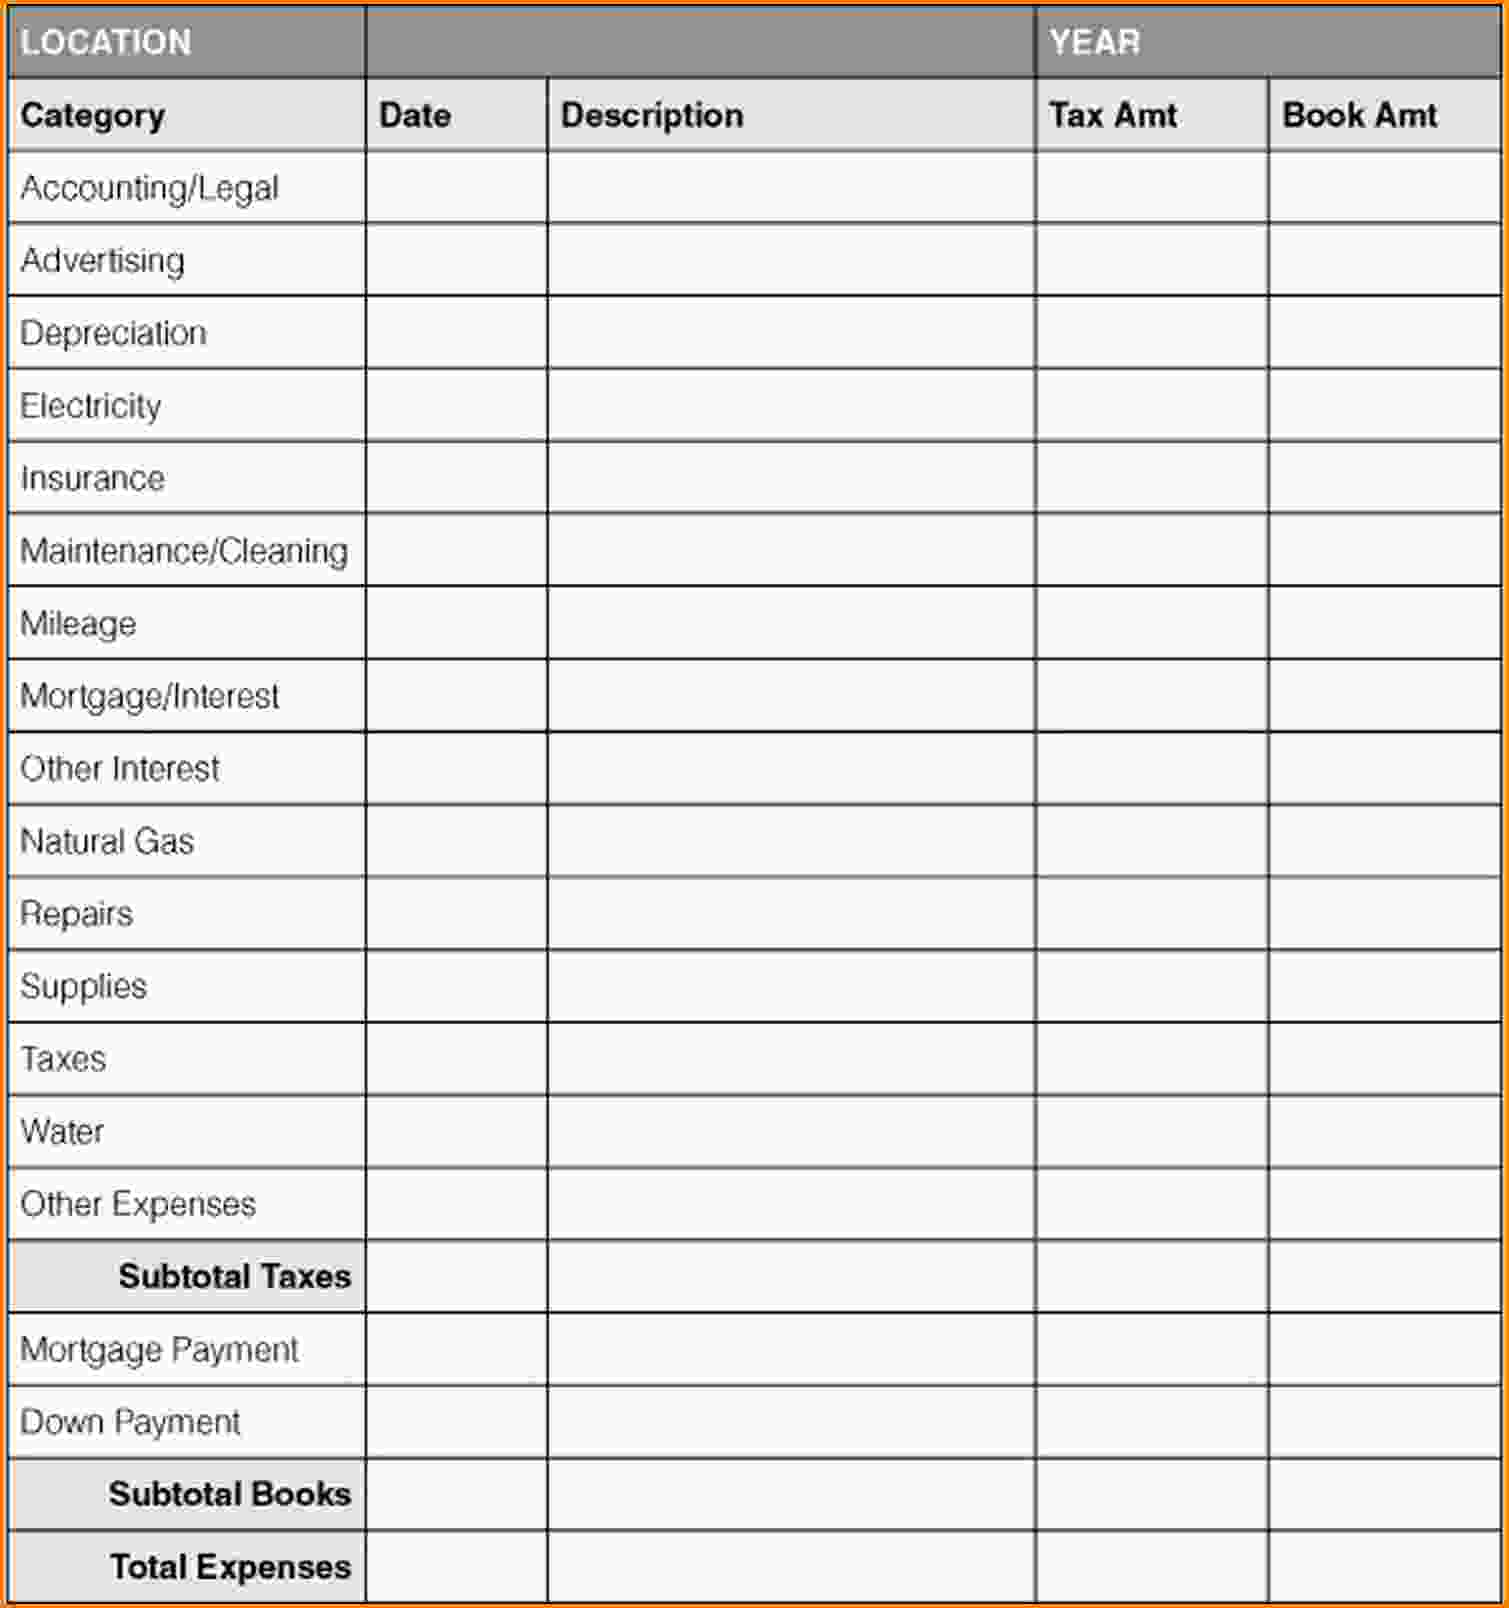 Microsoft Excel Accounting Templates Download 1 Accounting Spreadsheet Template Spreadsheet Templates for Busines Spreadsheet Templates for Busines How To Keep Accounts In Excel